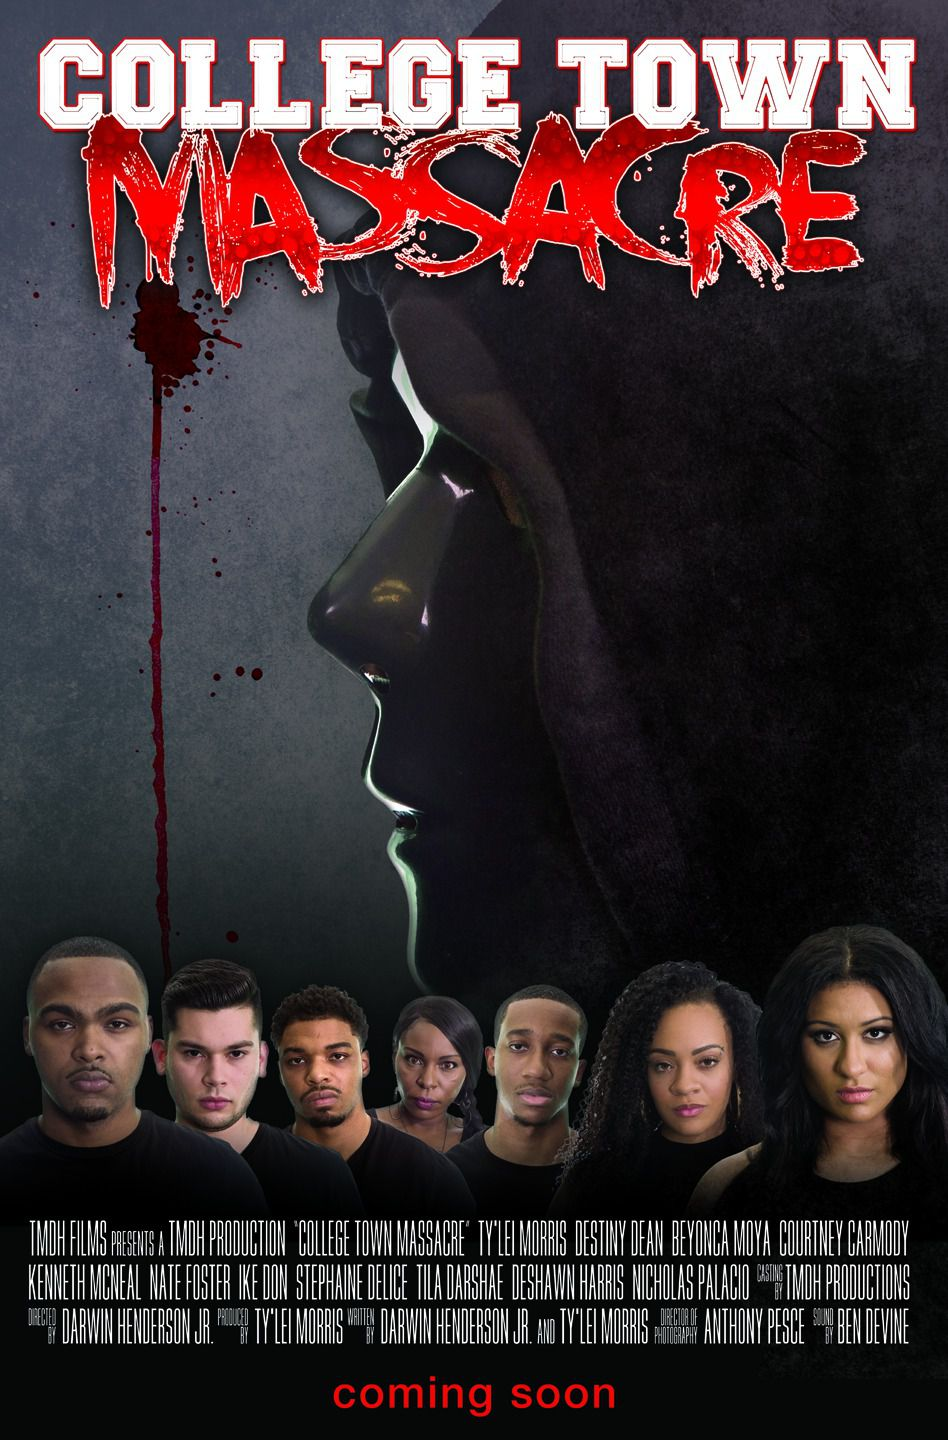 College Town Massacre - film poster